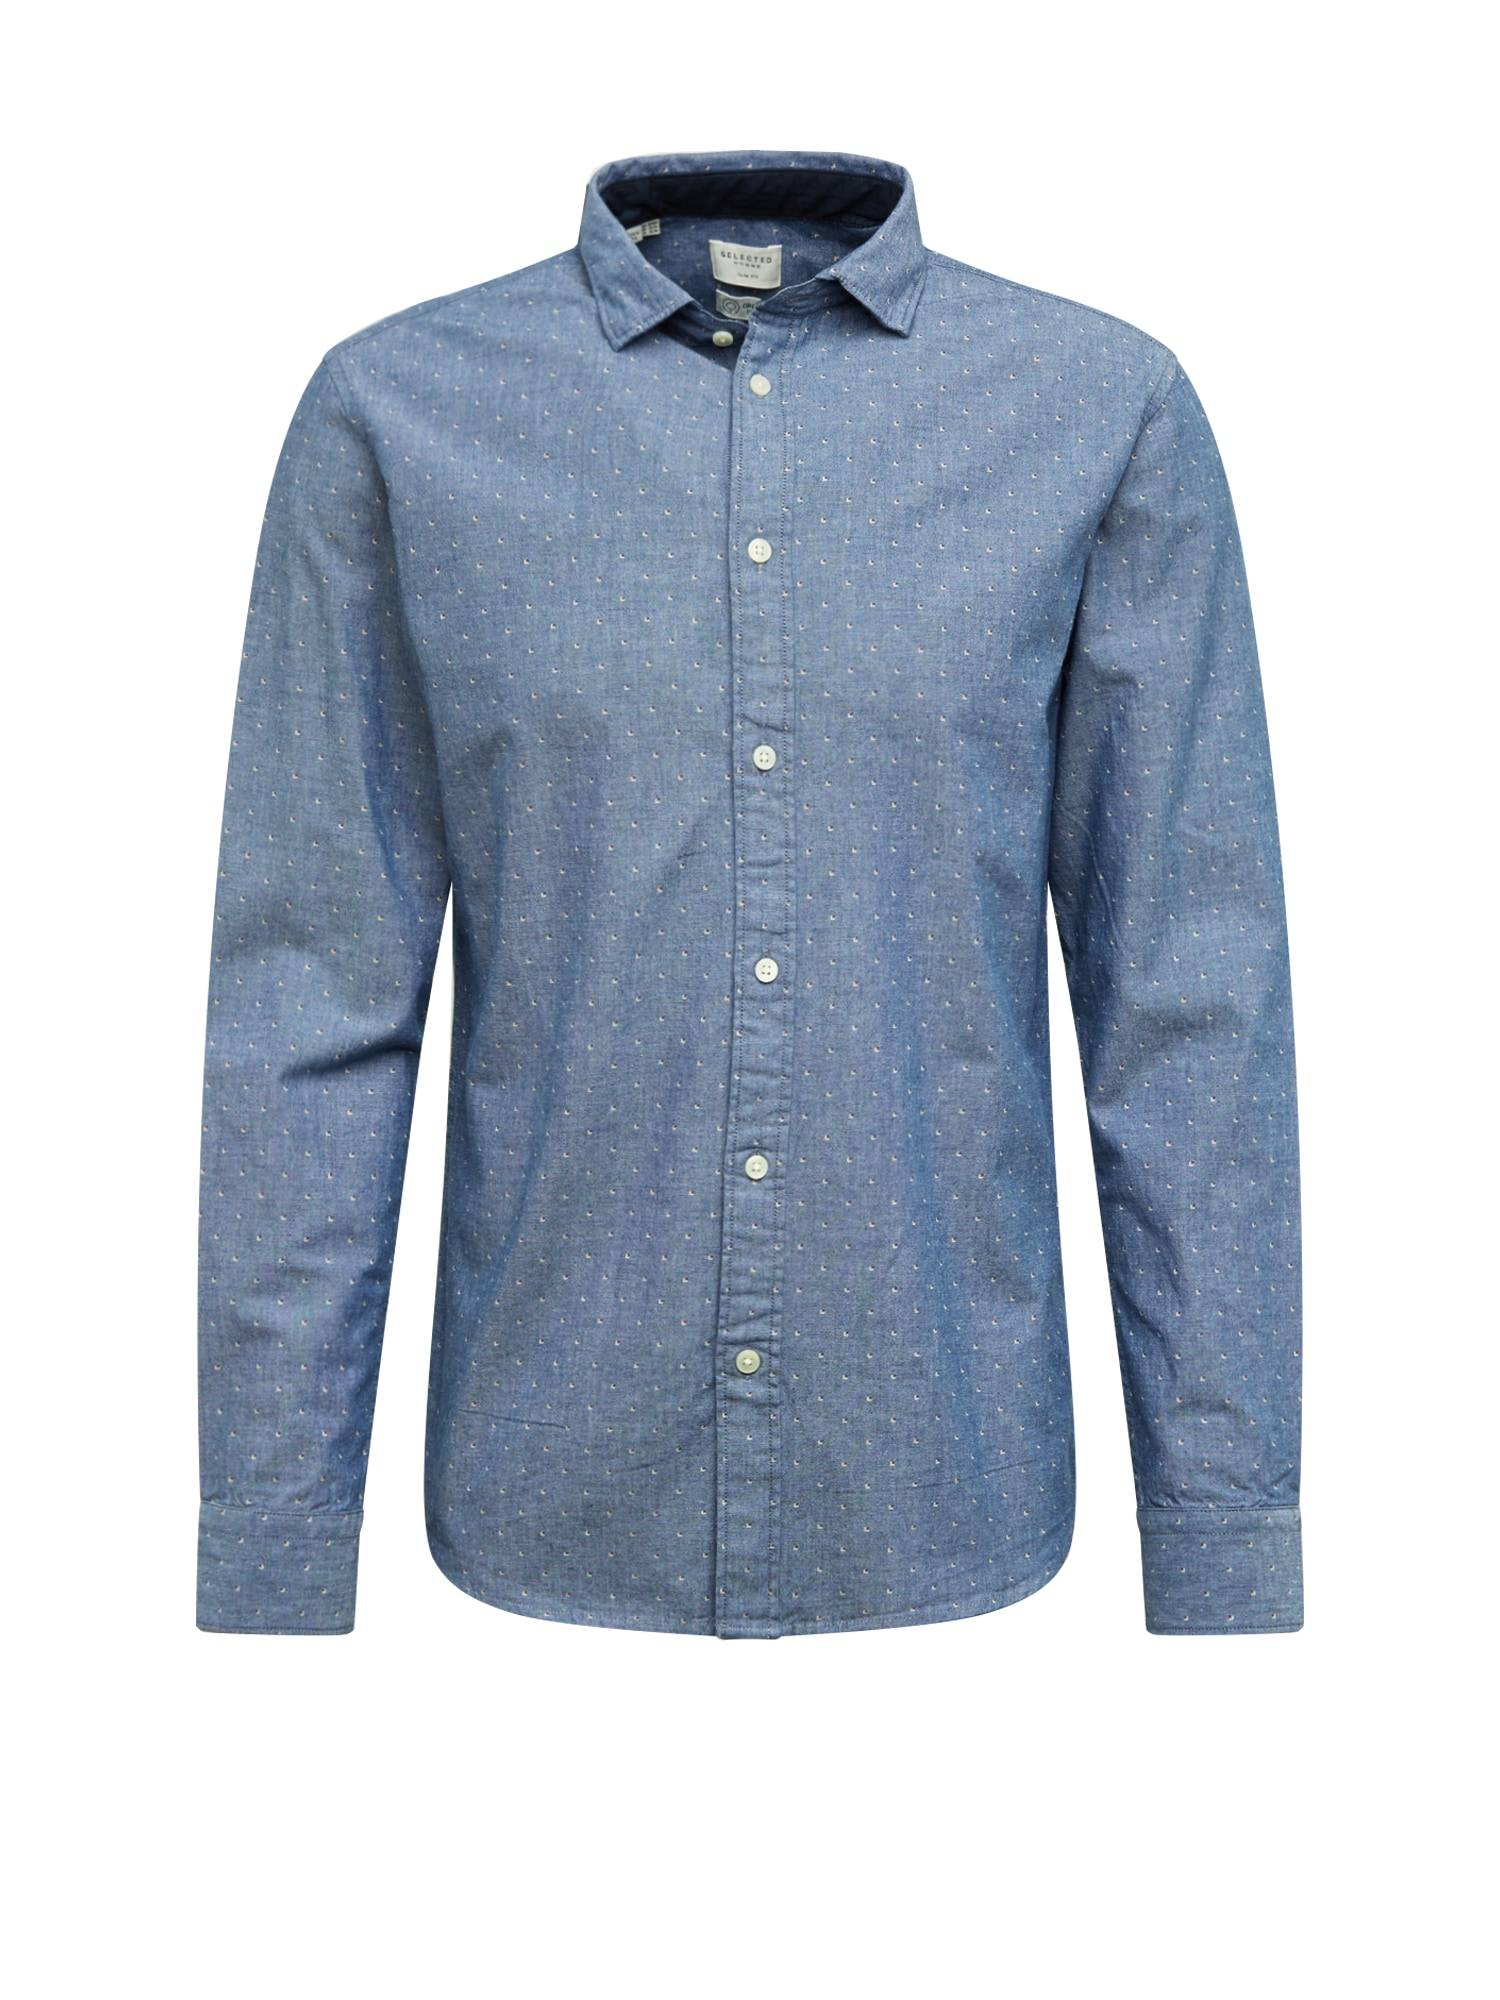 SELECTED HOMME Chemise 'NOOS'  - Bleu - Taille: S - male